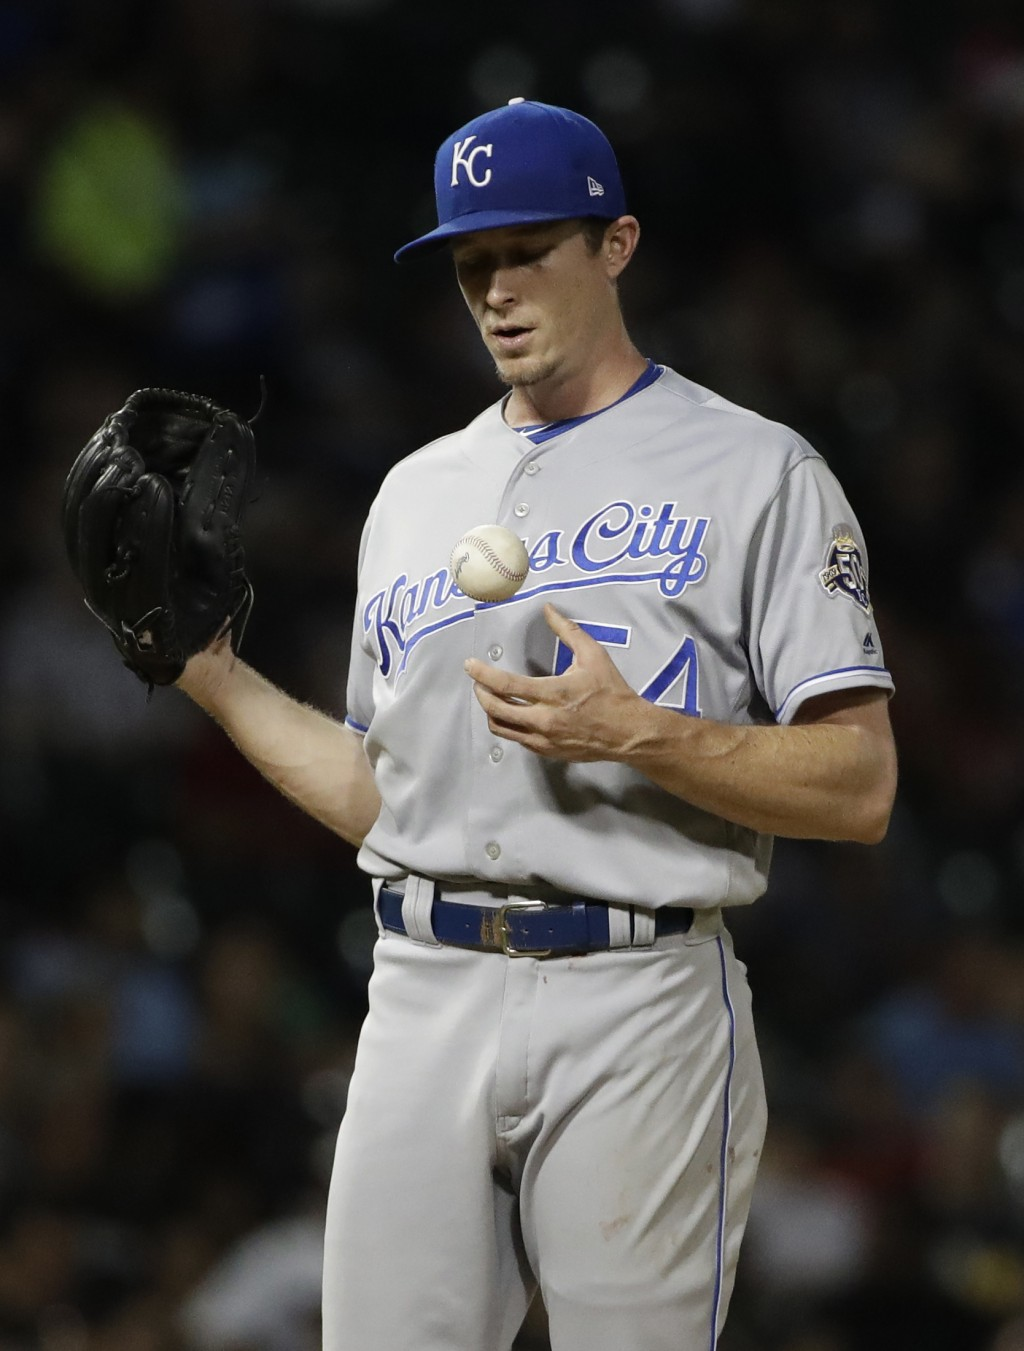 Kansas City Royals relief pitcher Tim Hill tosses a ball during the sixth inning of the team's baseball game against the Chicago White Sox, Friday, Ju